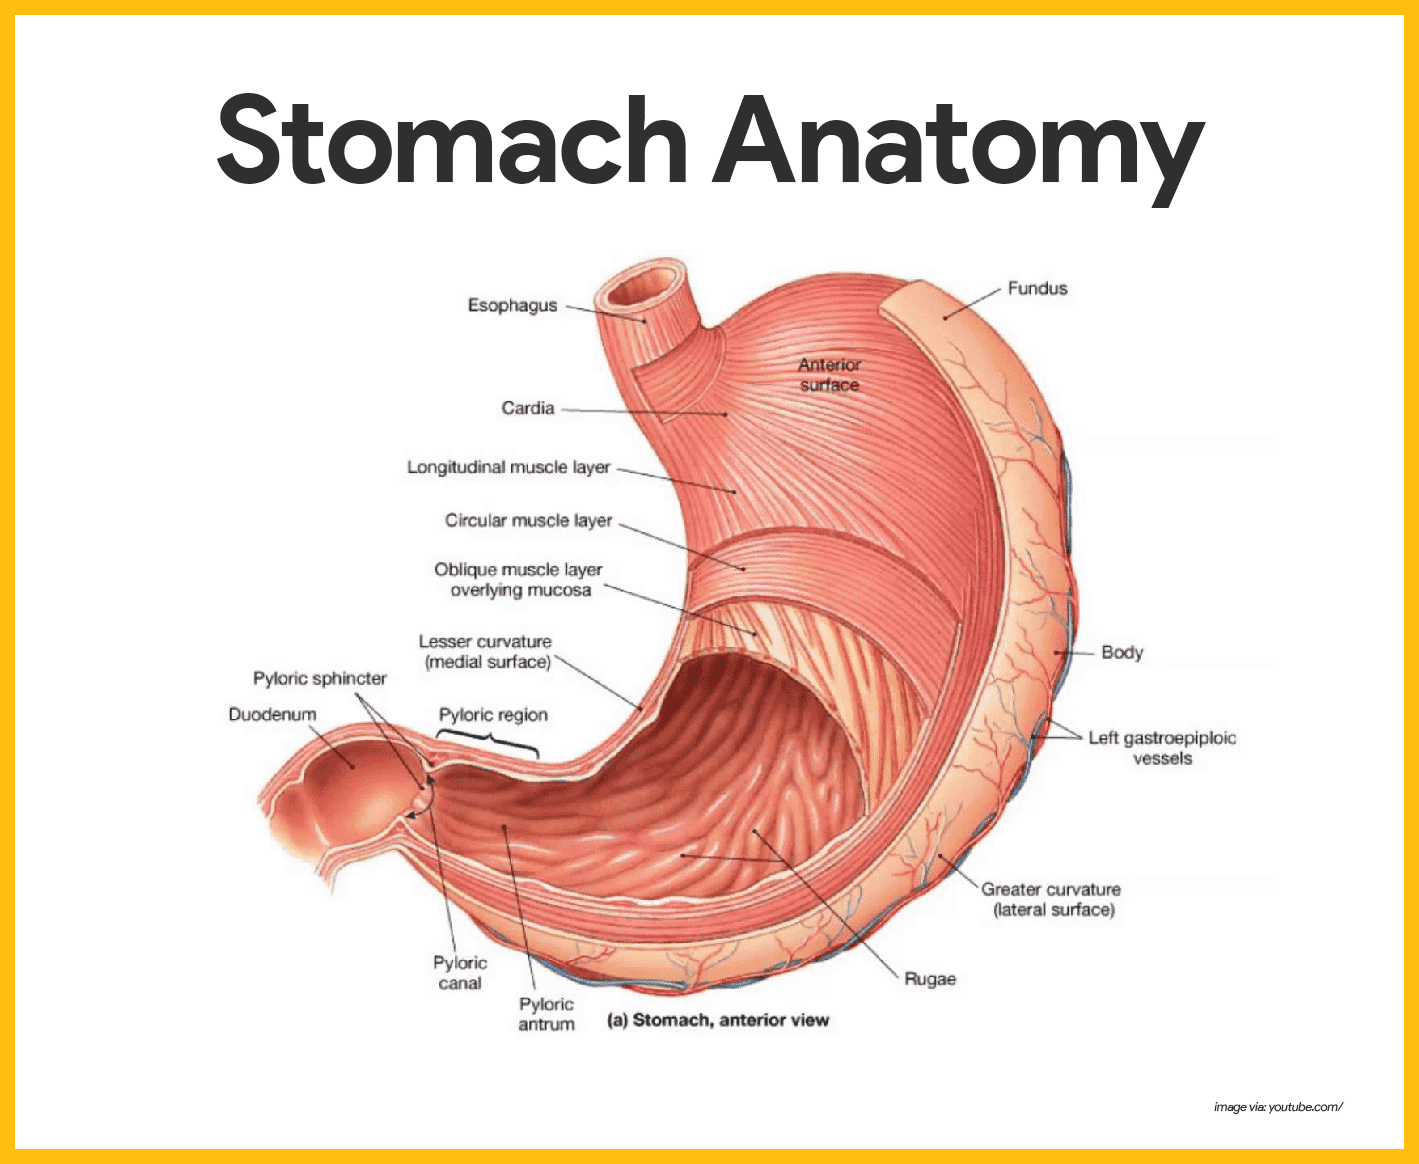 Digestive system anatomy and physiology nurseslabs different regions of the stomach have been named and they include the following ccuart Image collections